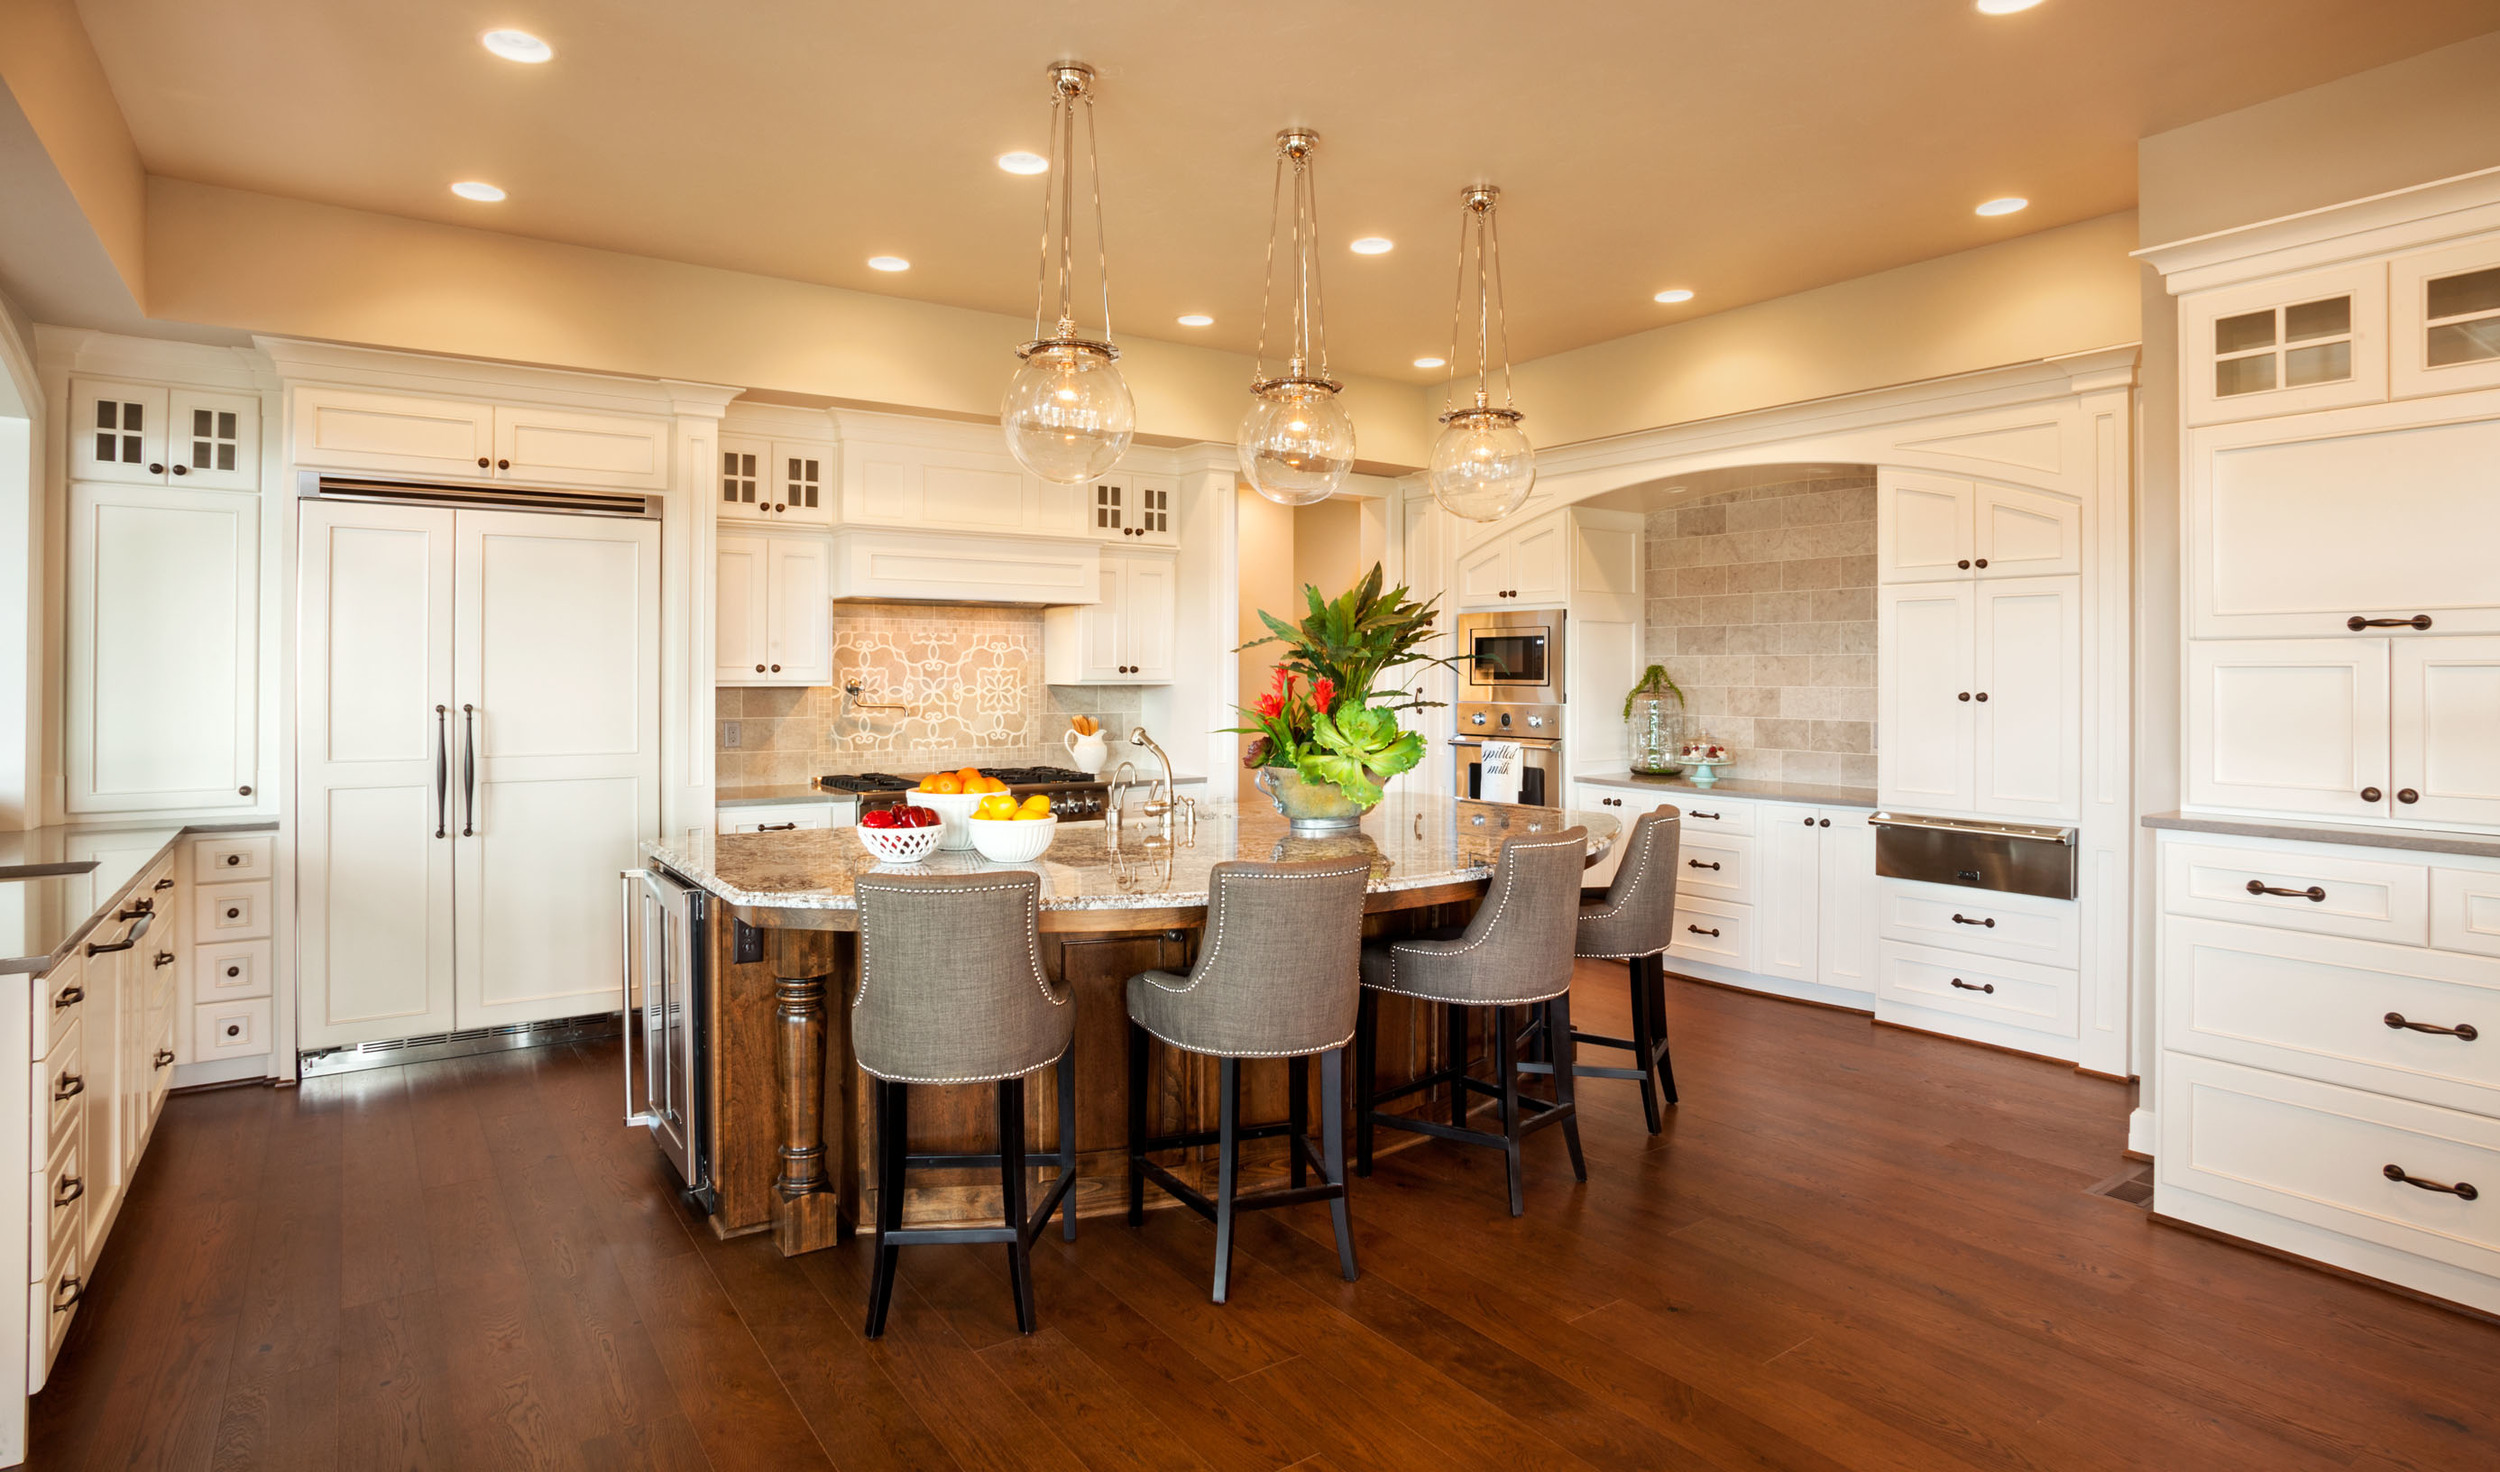 ghid's top 5 kitchen designs! — garrison hullinger interior design